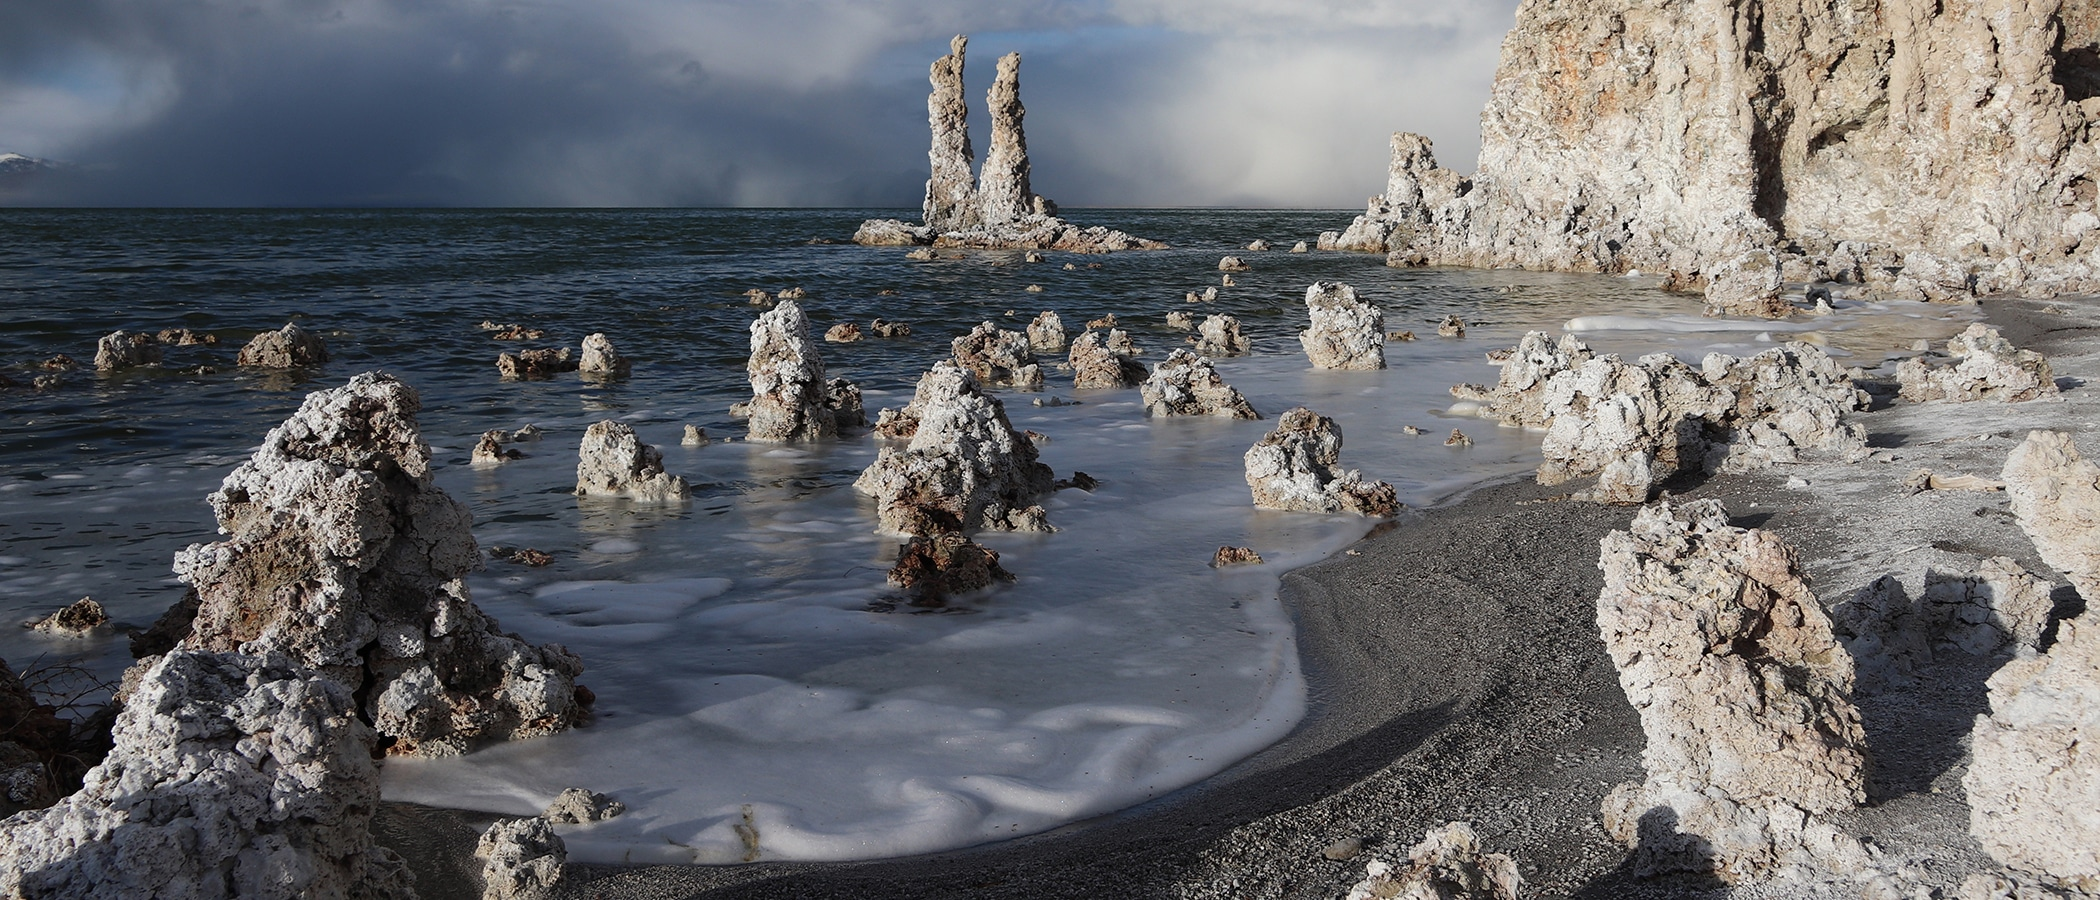 A storm brews in the distance behind a large grove of tufa towers on the shore of Mono Lake with a sandy peninsula dotted with smaller tufa mounds, in dramatic light, in the foreground.